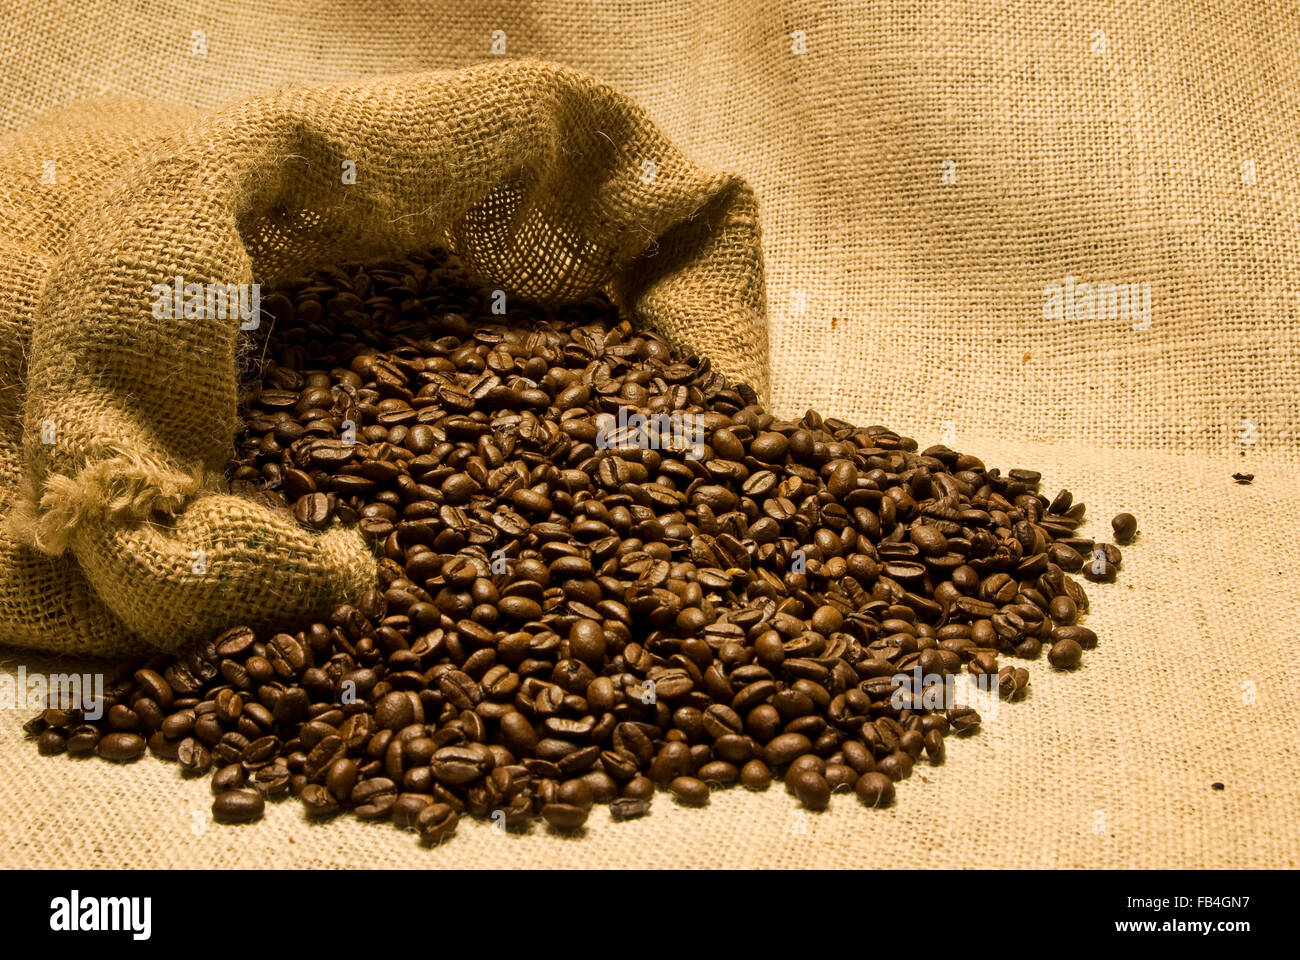 Spilled Bag of Coffee Beans - Stock Image